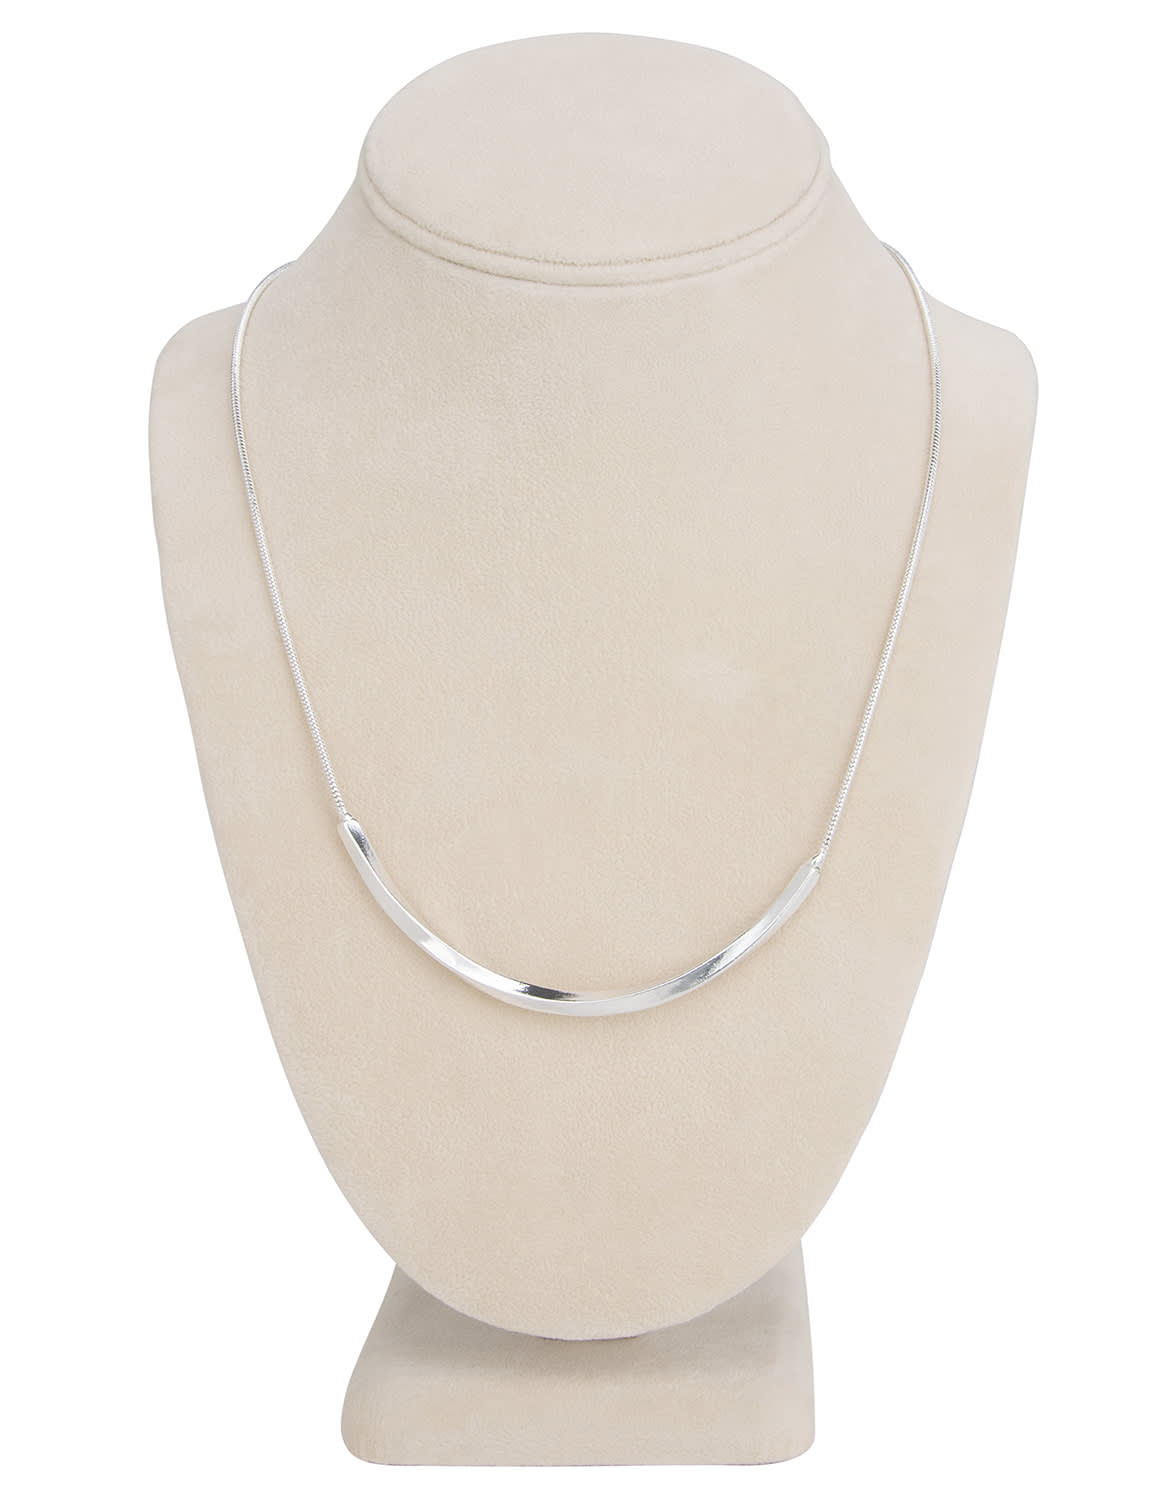 Simple Silver Bar Necklace - Silver - Back